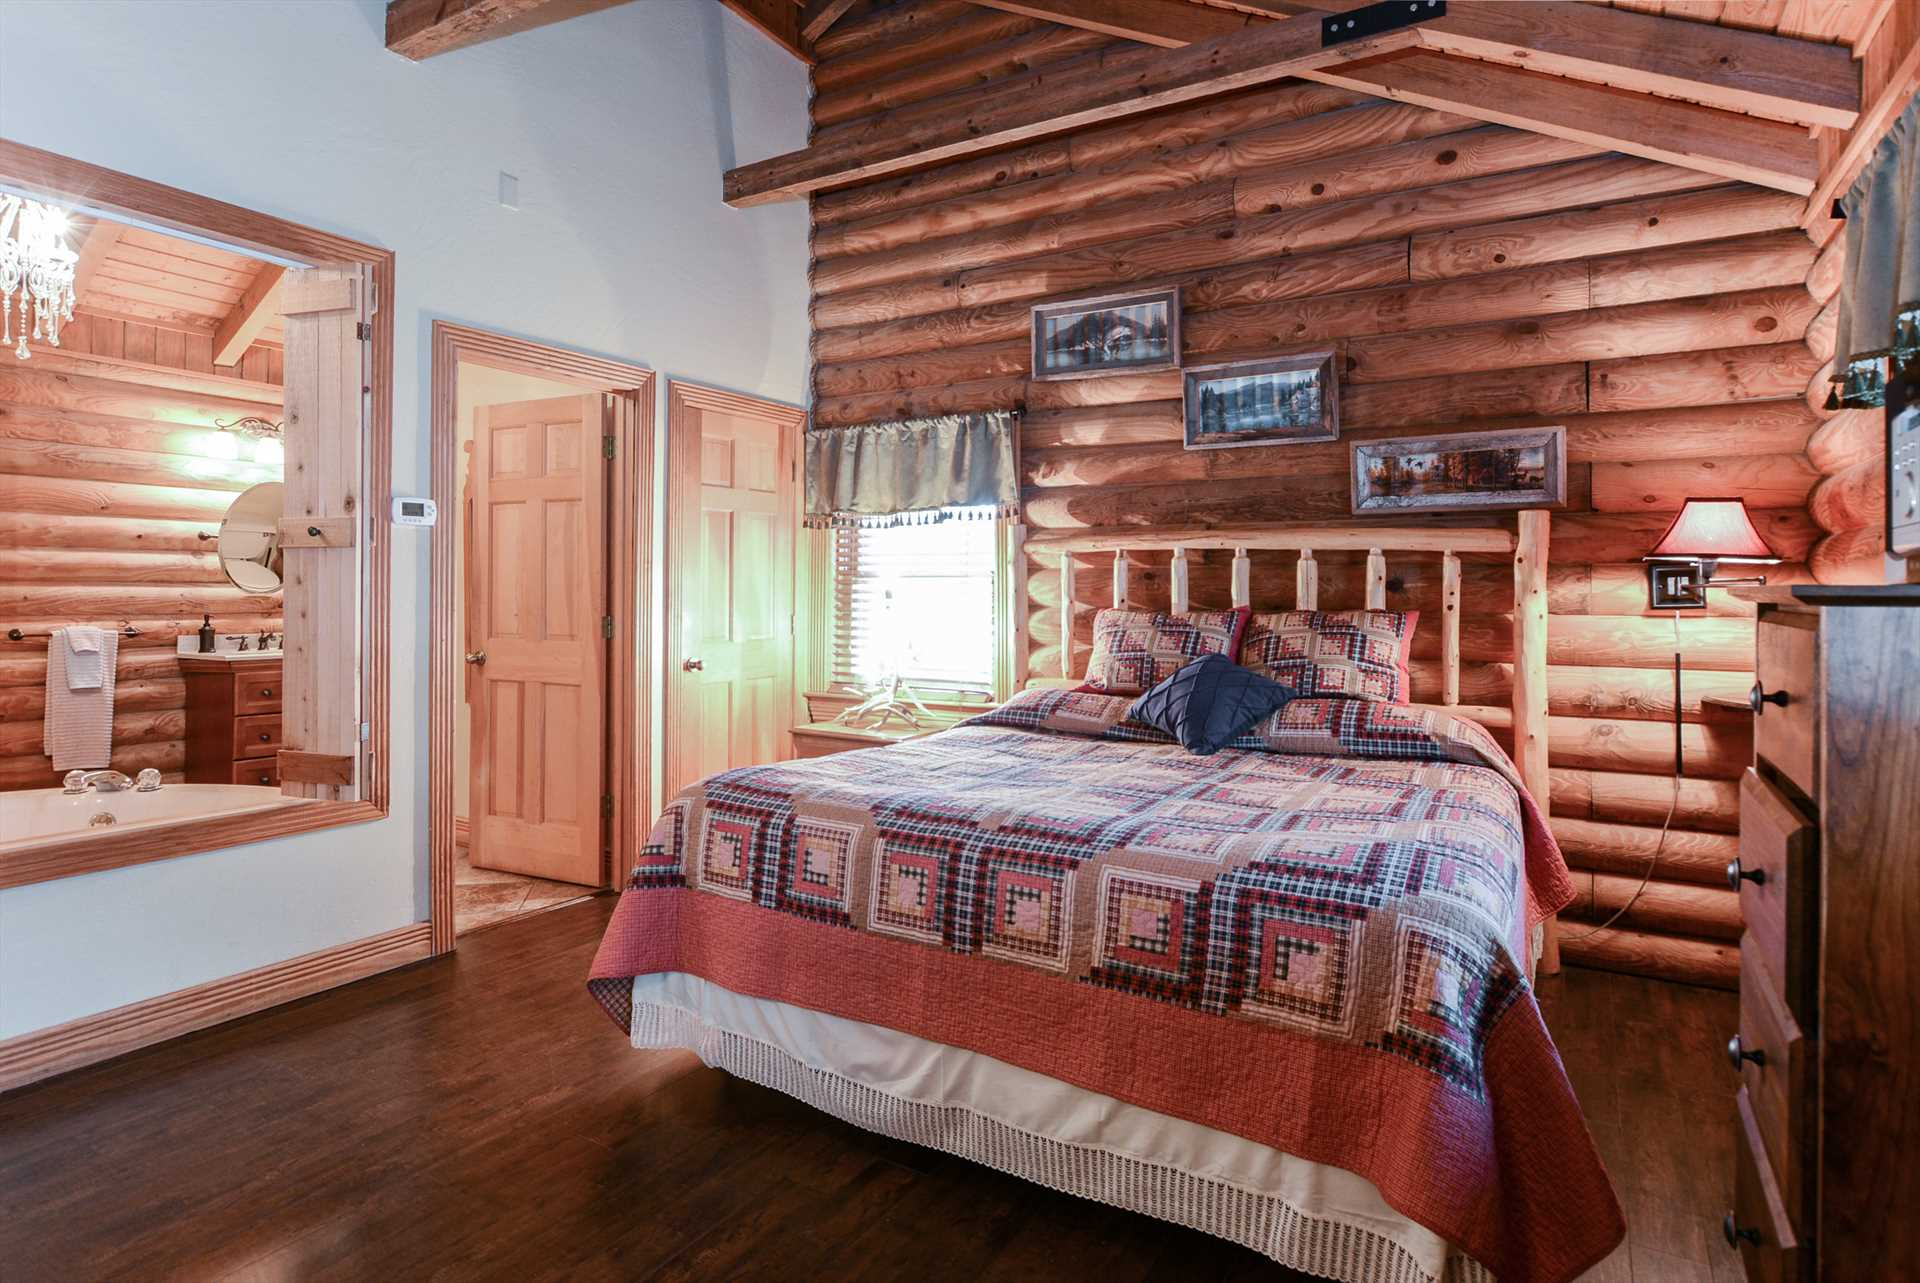 The rustic charm of the cabin continues into the bedroom are